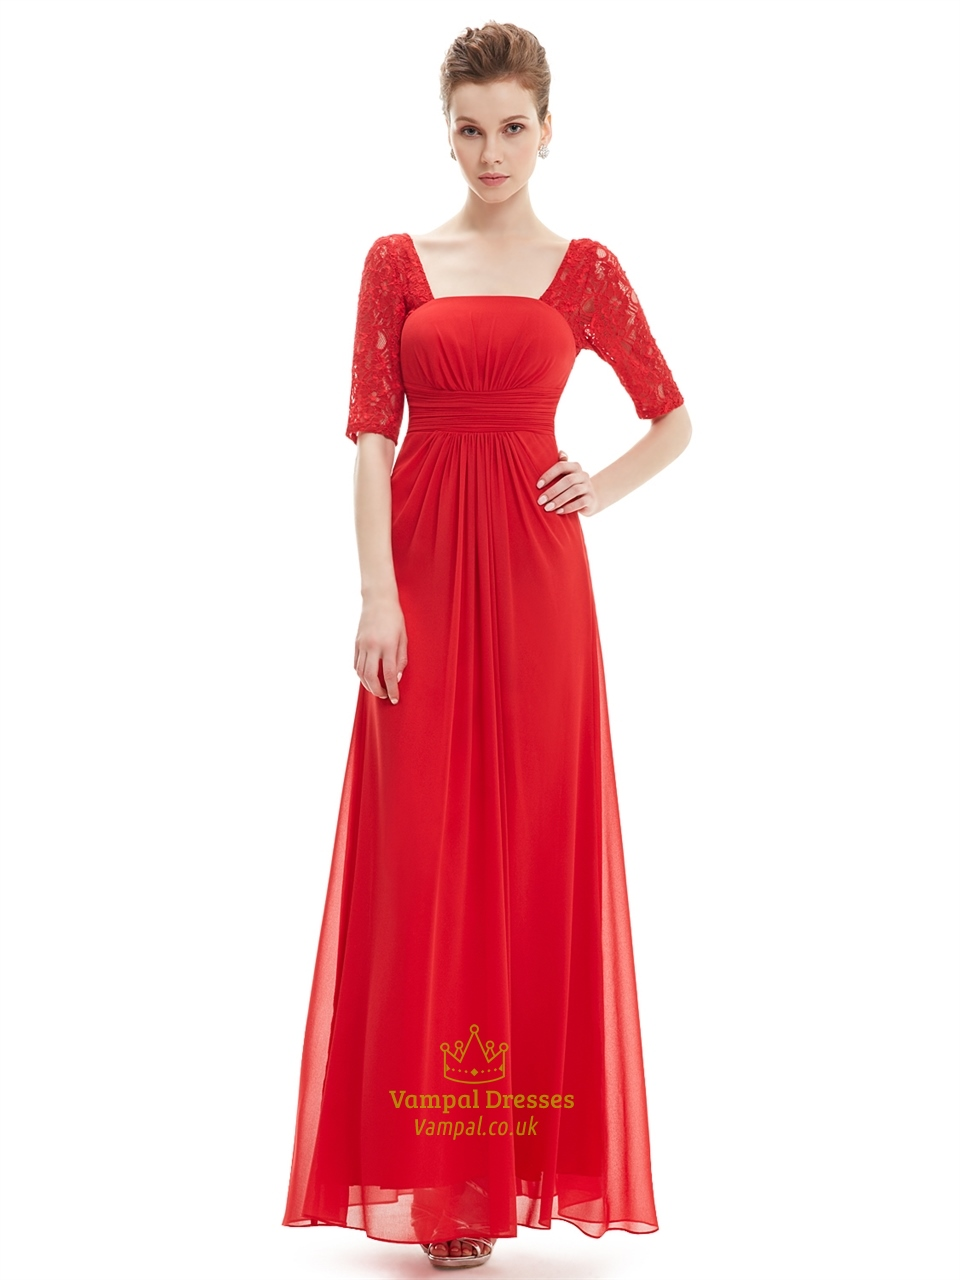 Long bridesmaid dress with lace sleeves vampal dresses red chiffon party wedding bridesmaid dress with lace sleeves ombrellifo Gallery